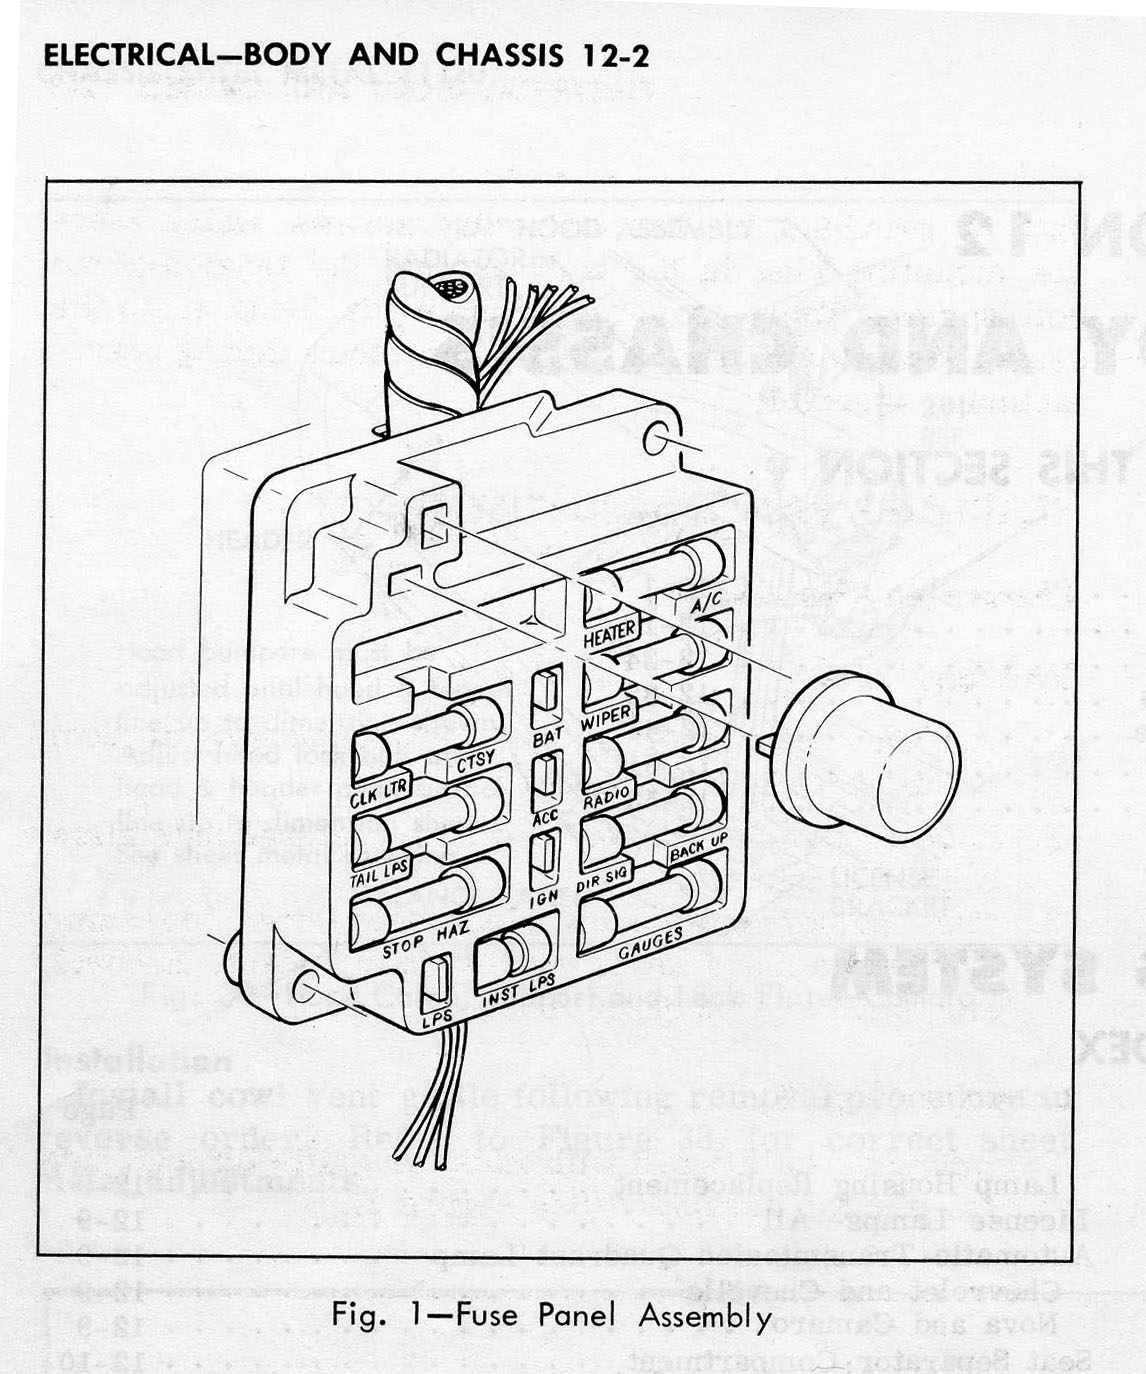 1965 Mustang Fuse Panel Fuse Box Diagram Ford Mustang